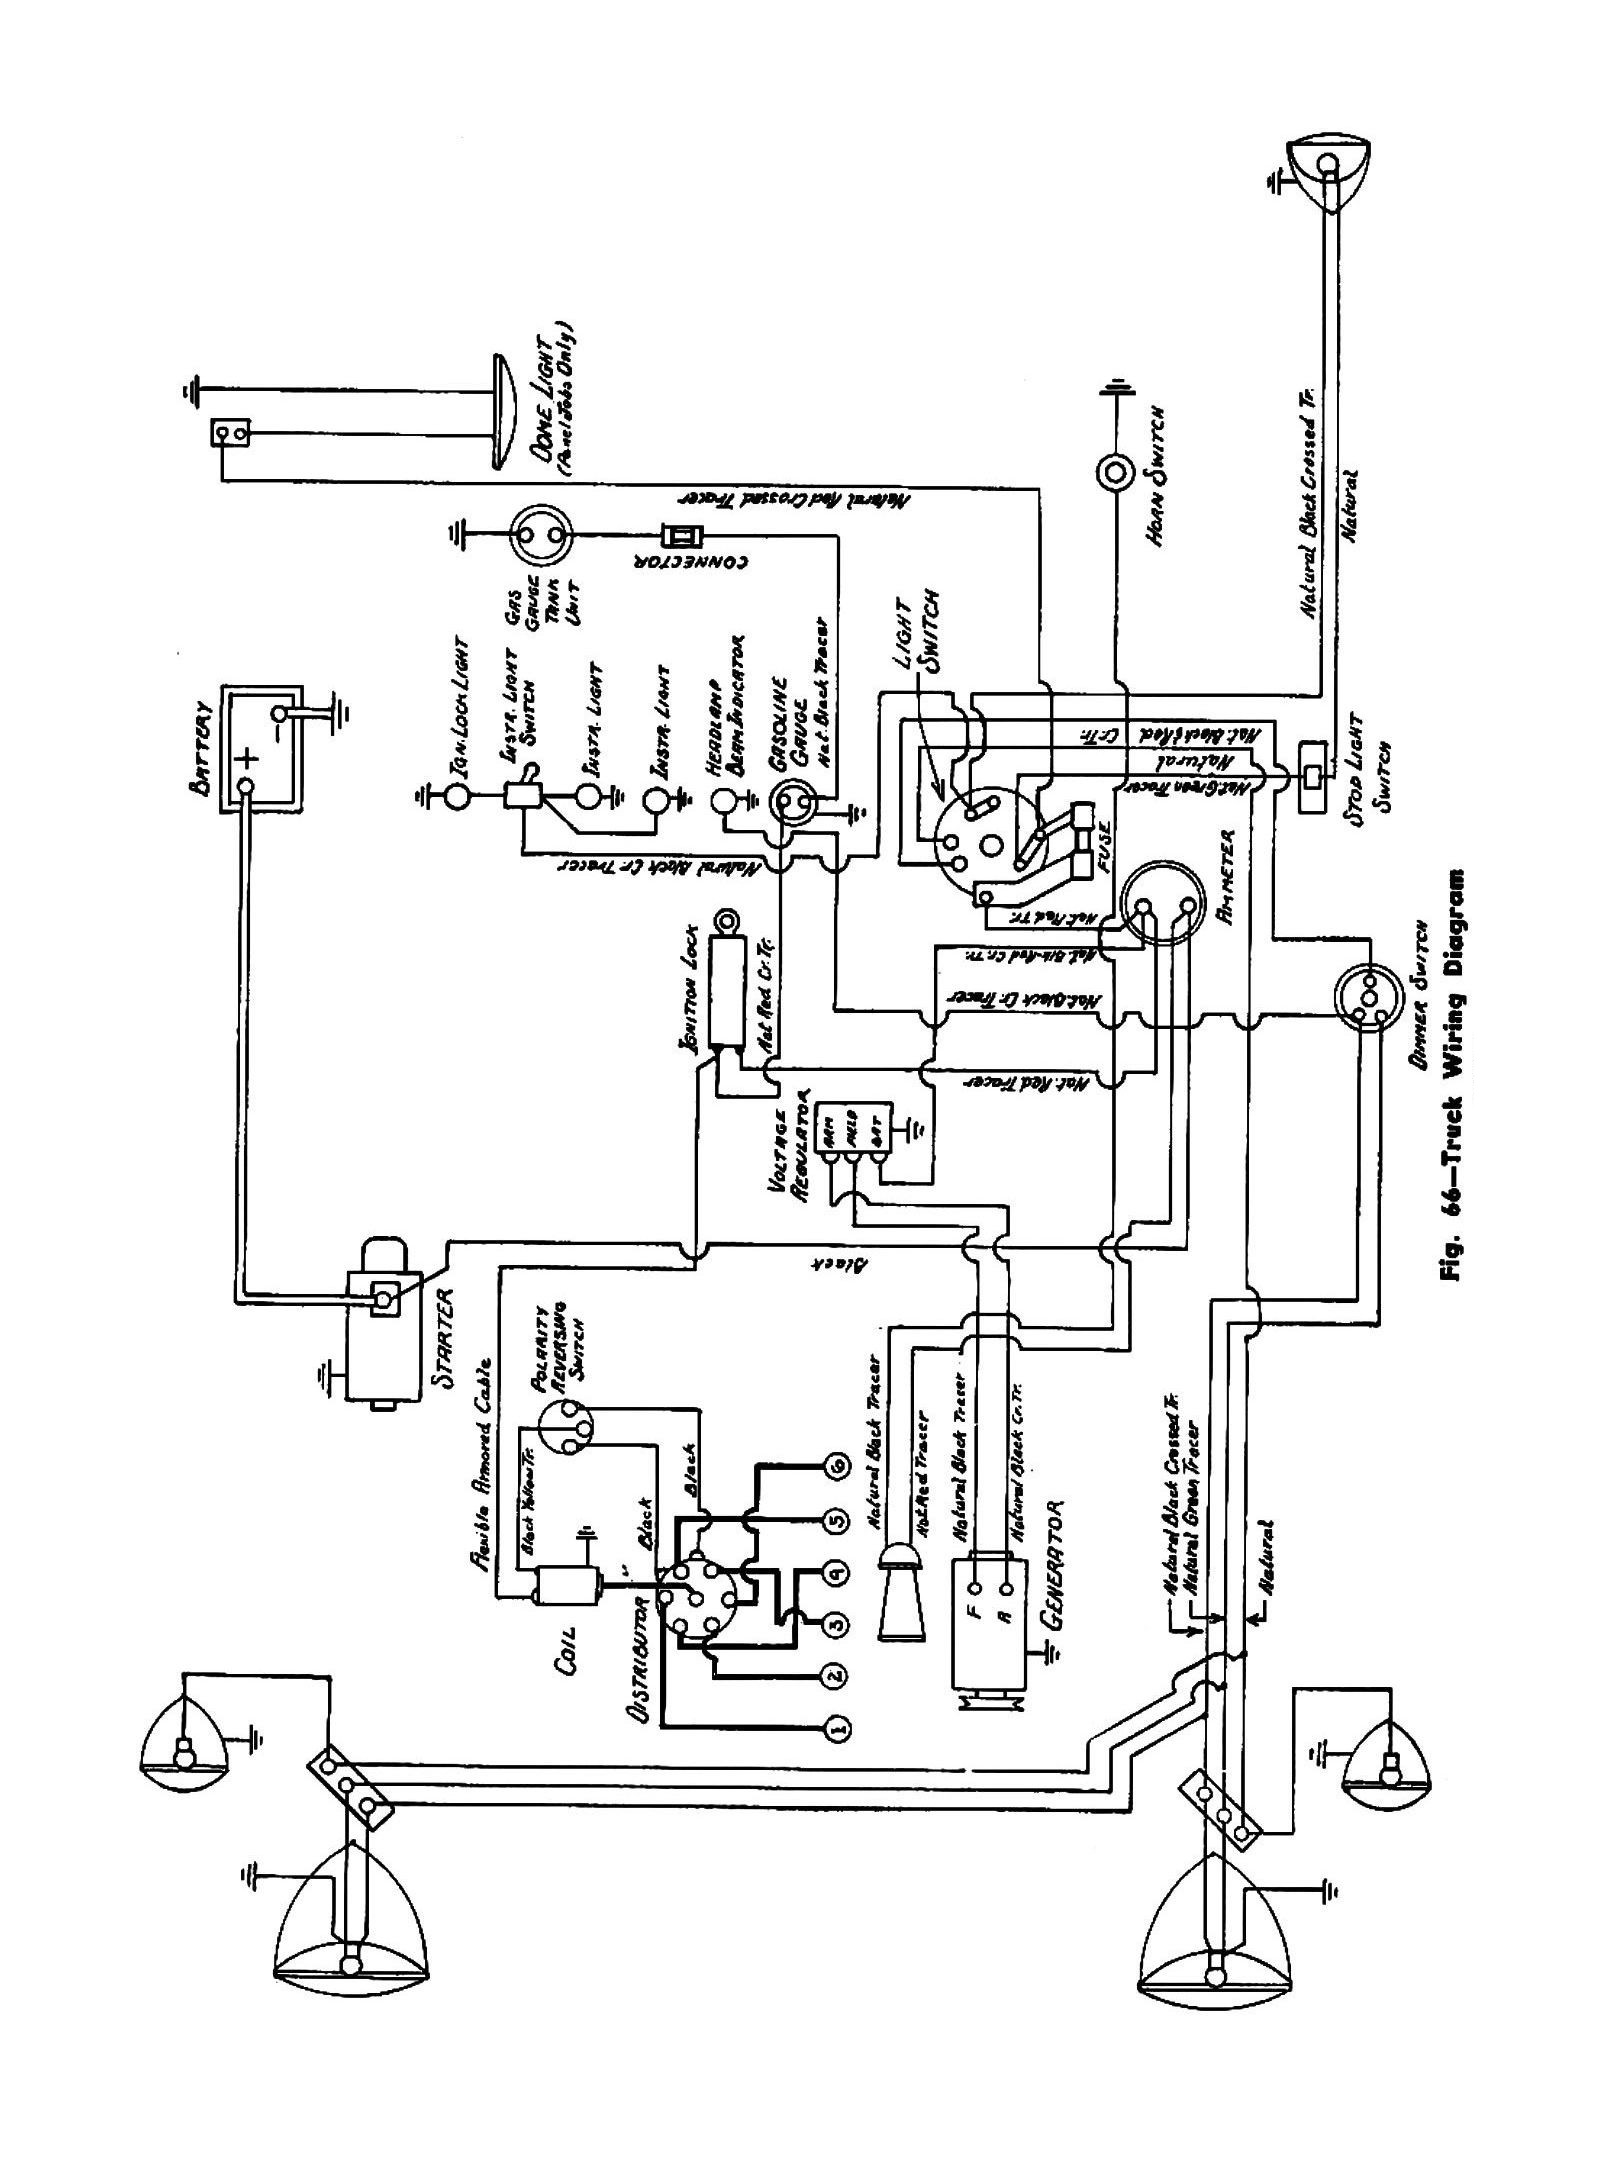 1948 dodge truck wiring diagram wiring data \u2022 1986 dodge w150 wiring diagram 1948 dodge truck wiring diagram images gallery